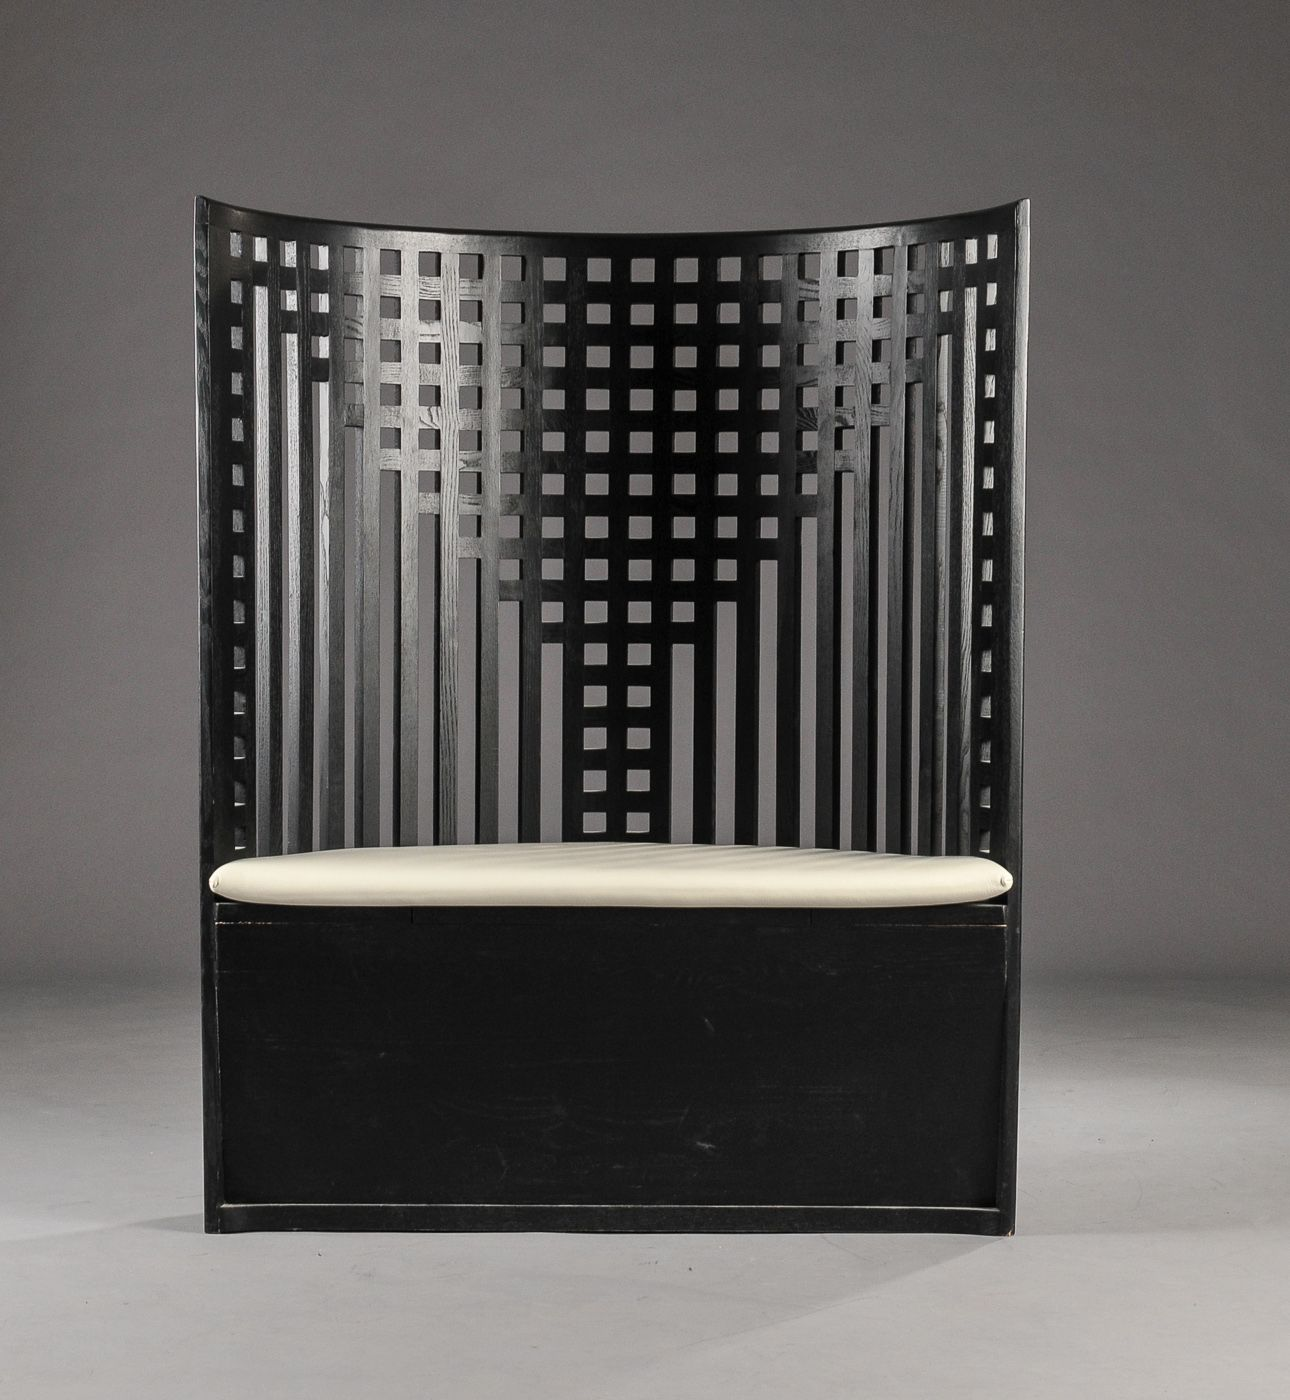 charles rennie mackintosh willow chair patio covers walmart canada settee the was designed in 1904 for tea rooms glasgow scotland